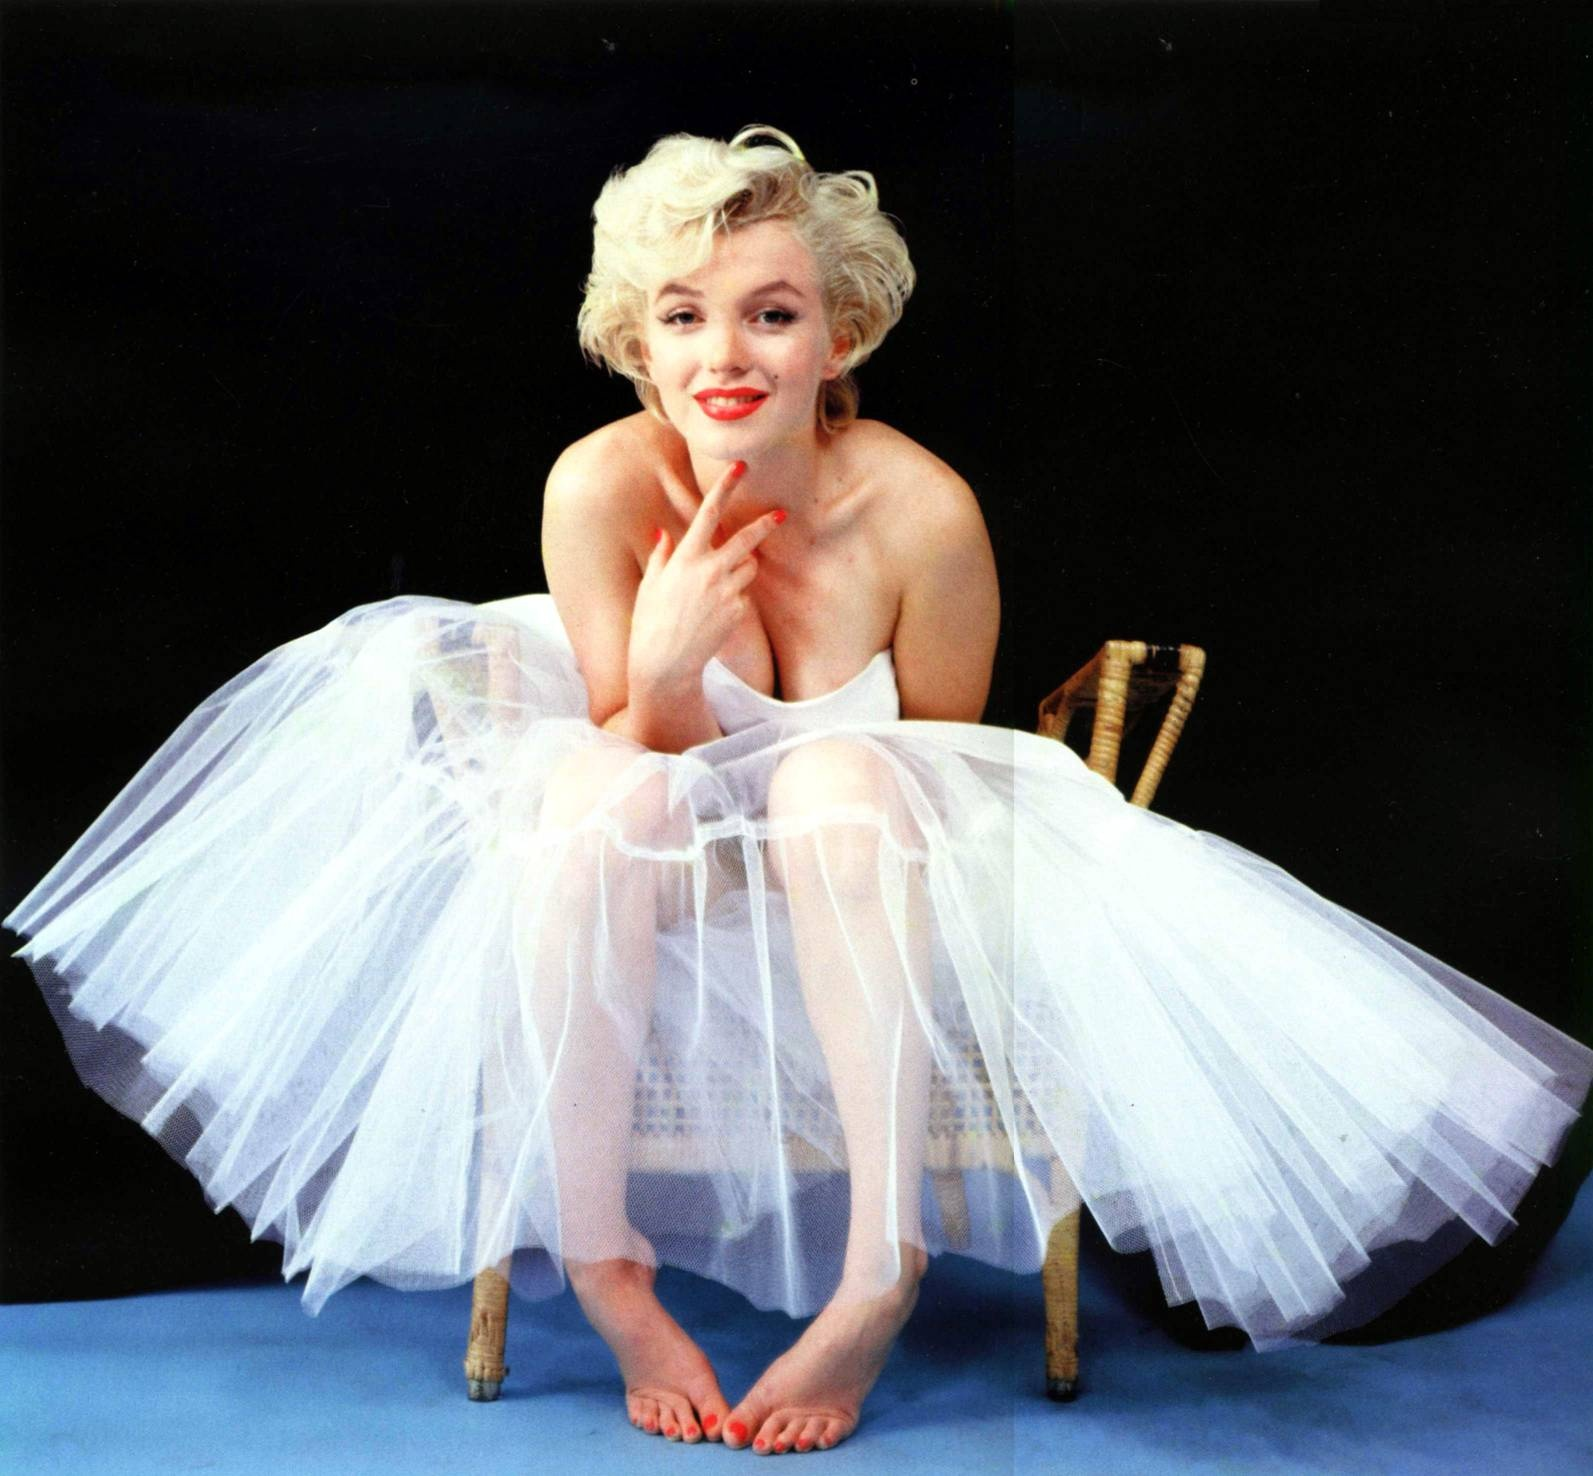 FeetXpress - A Dutch Foot Blog: Marilyn Monroe